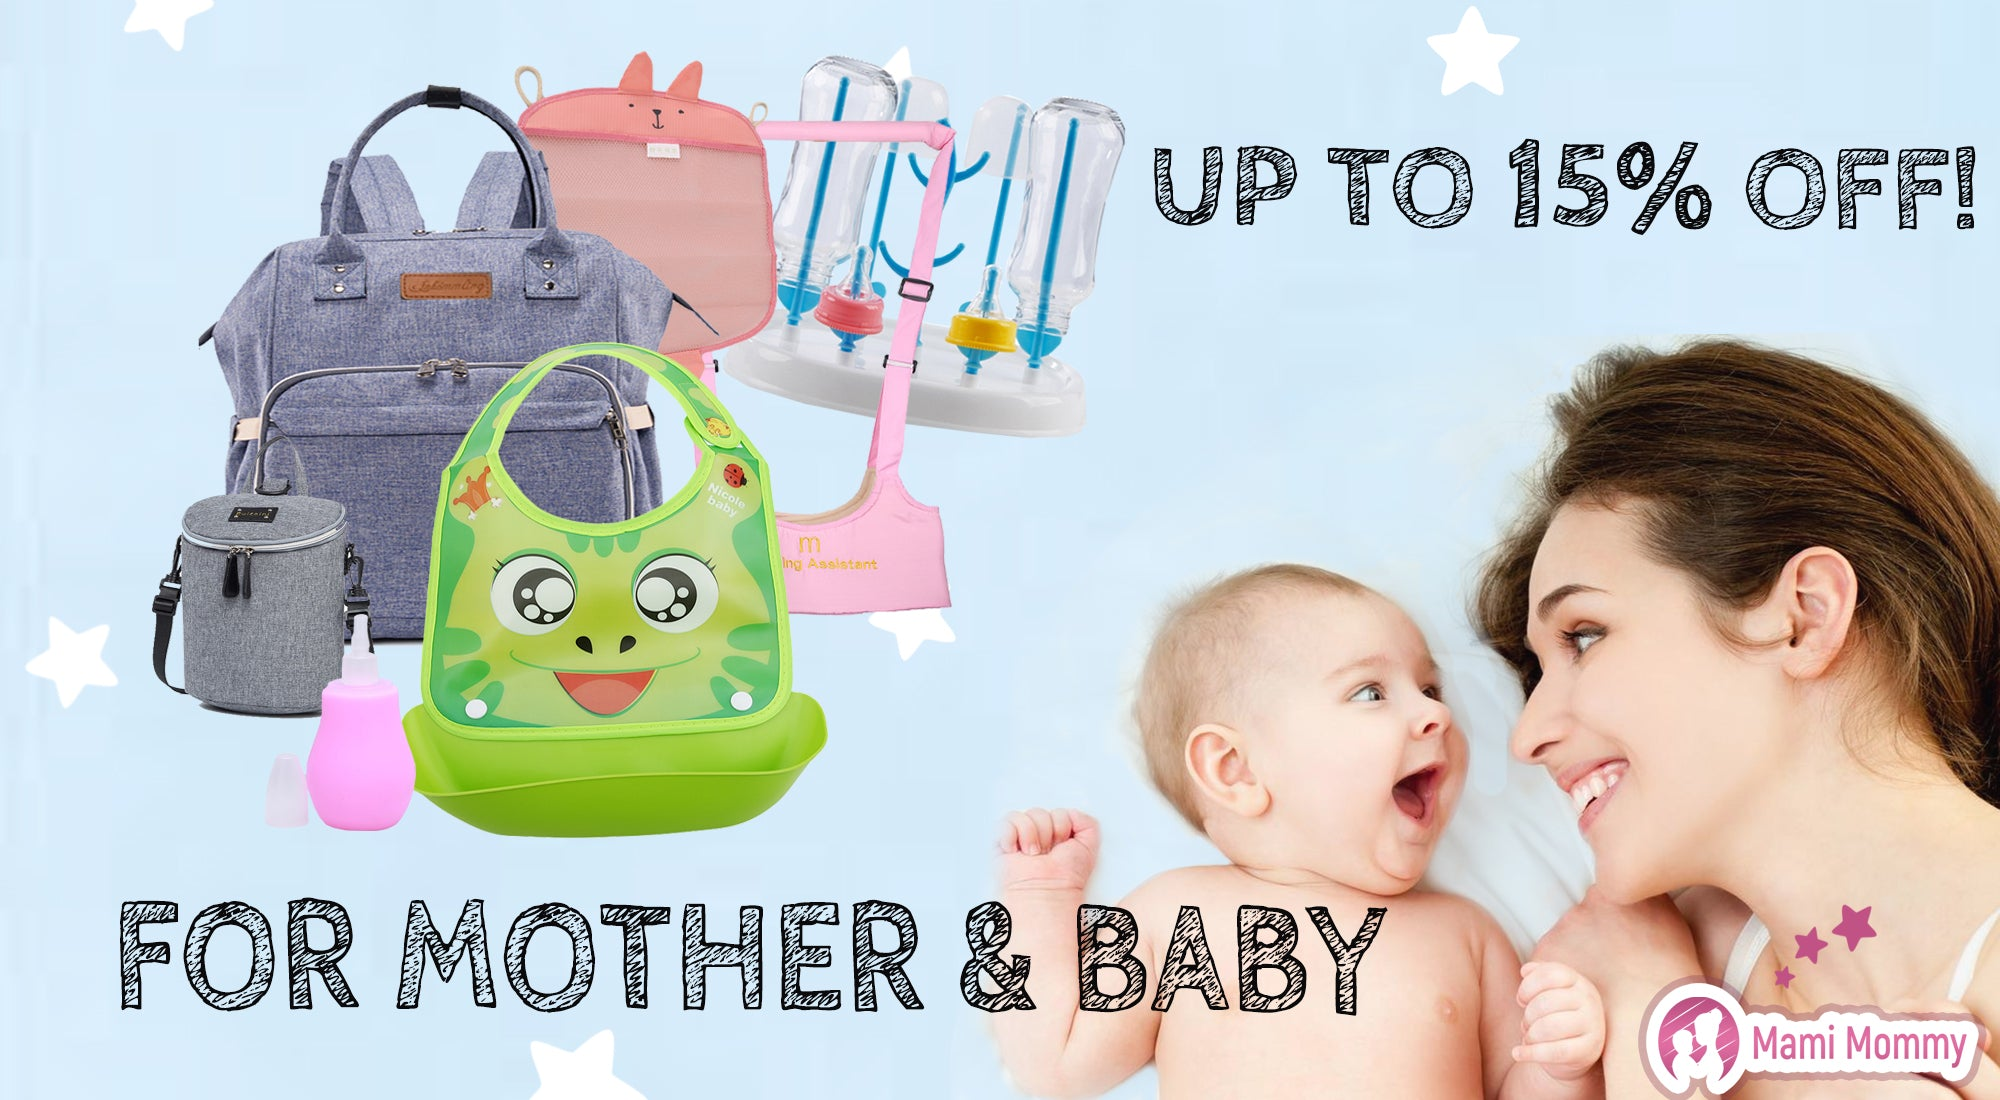 mami mommy net For Mother & Baby